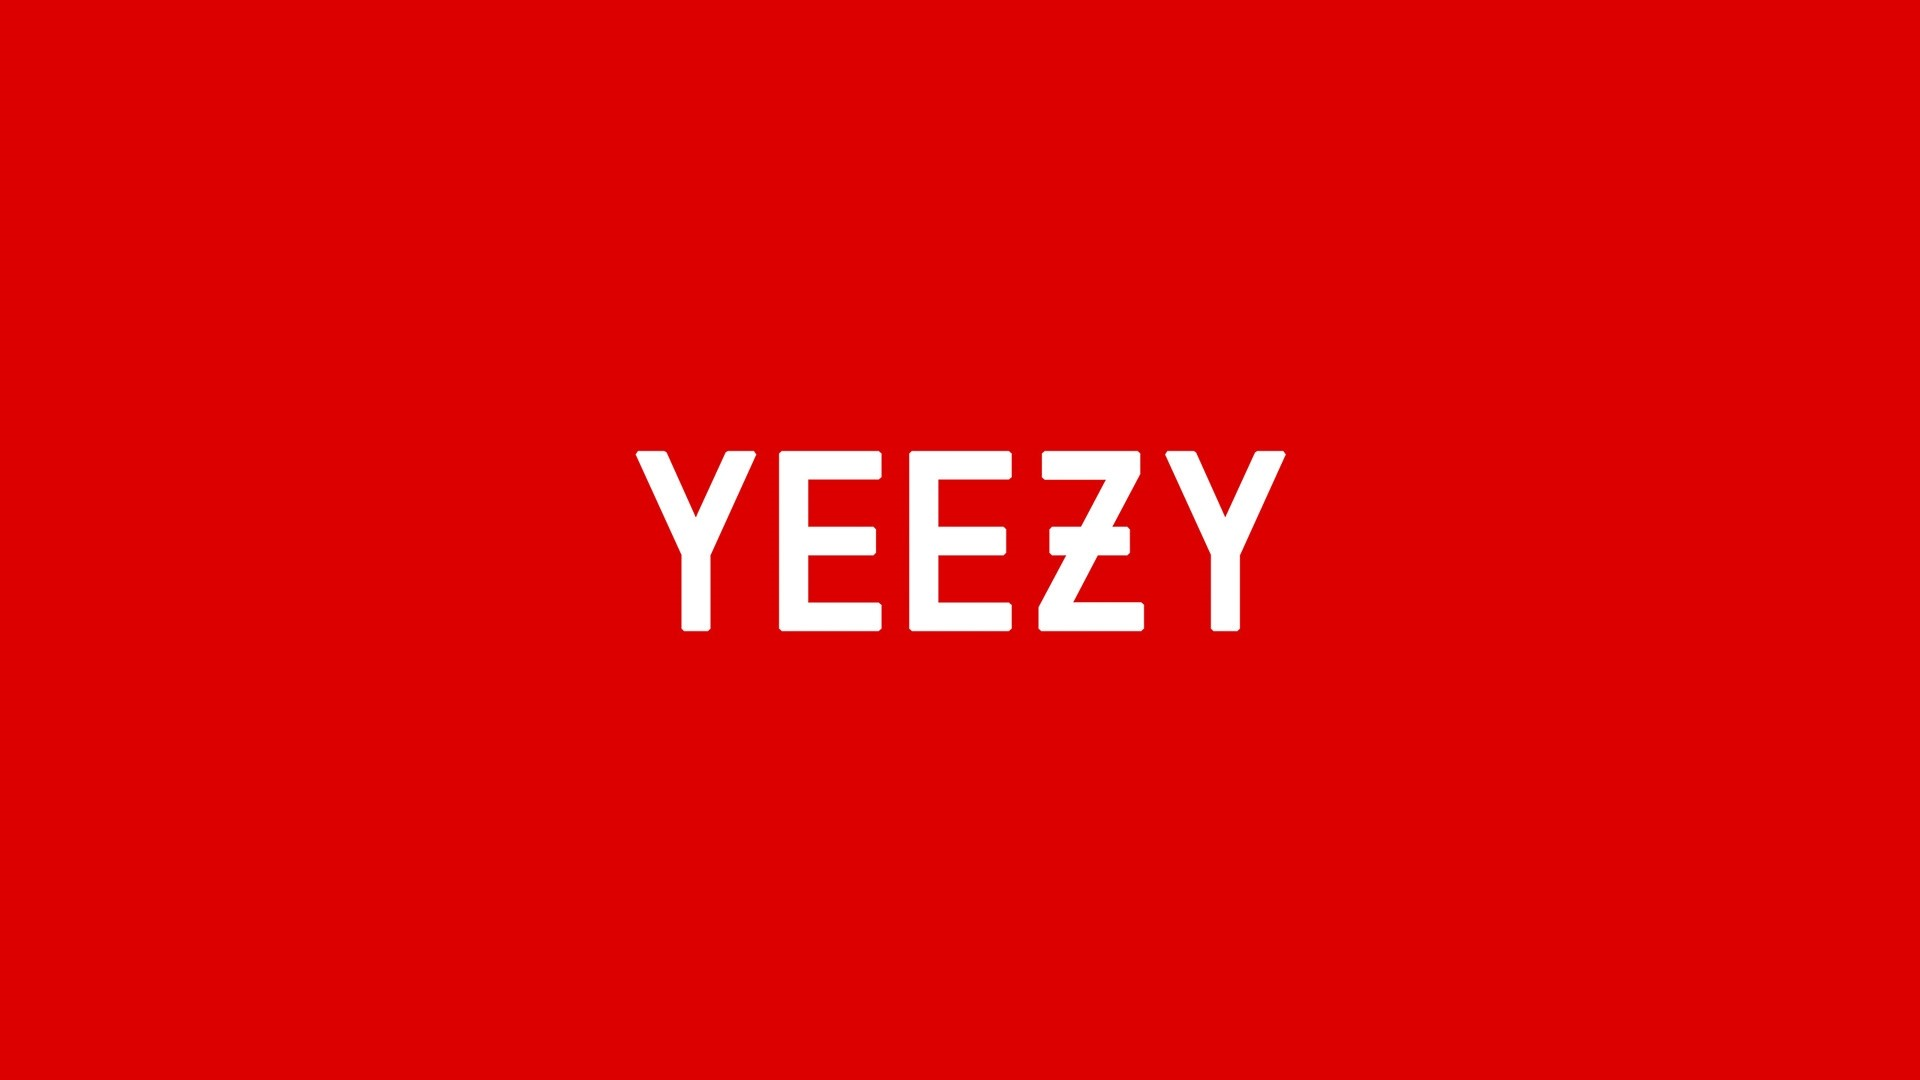 Yeezy Wallpaper for pc